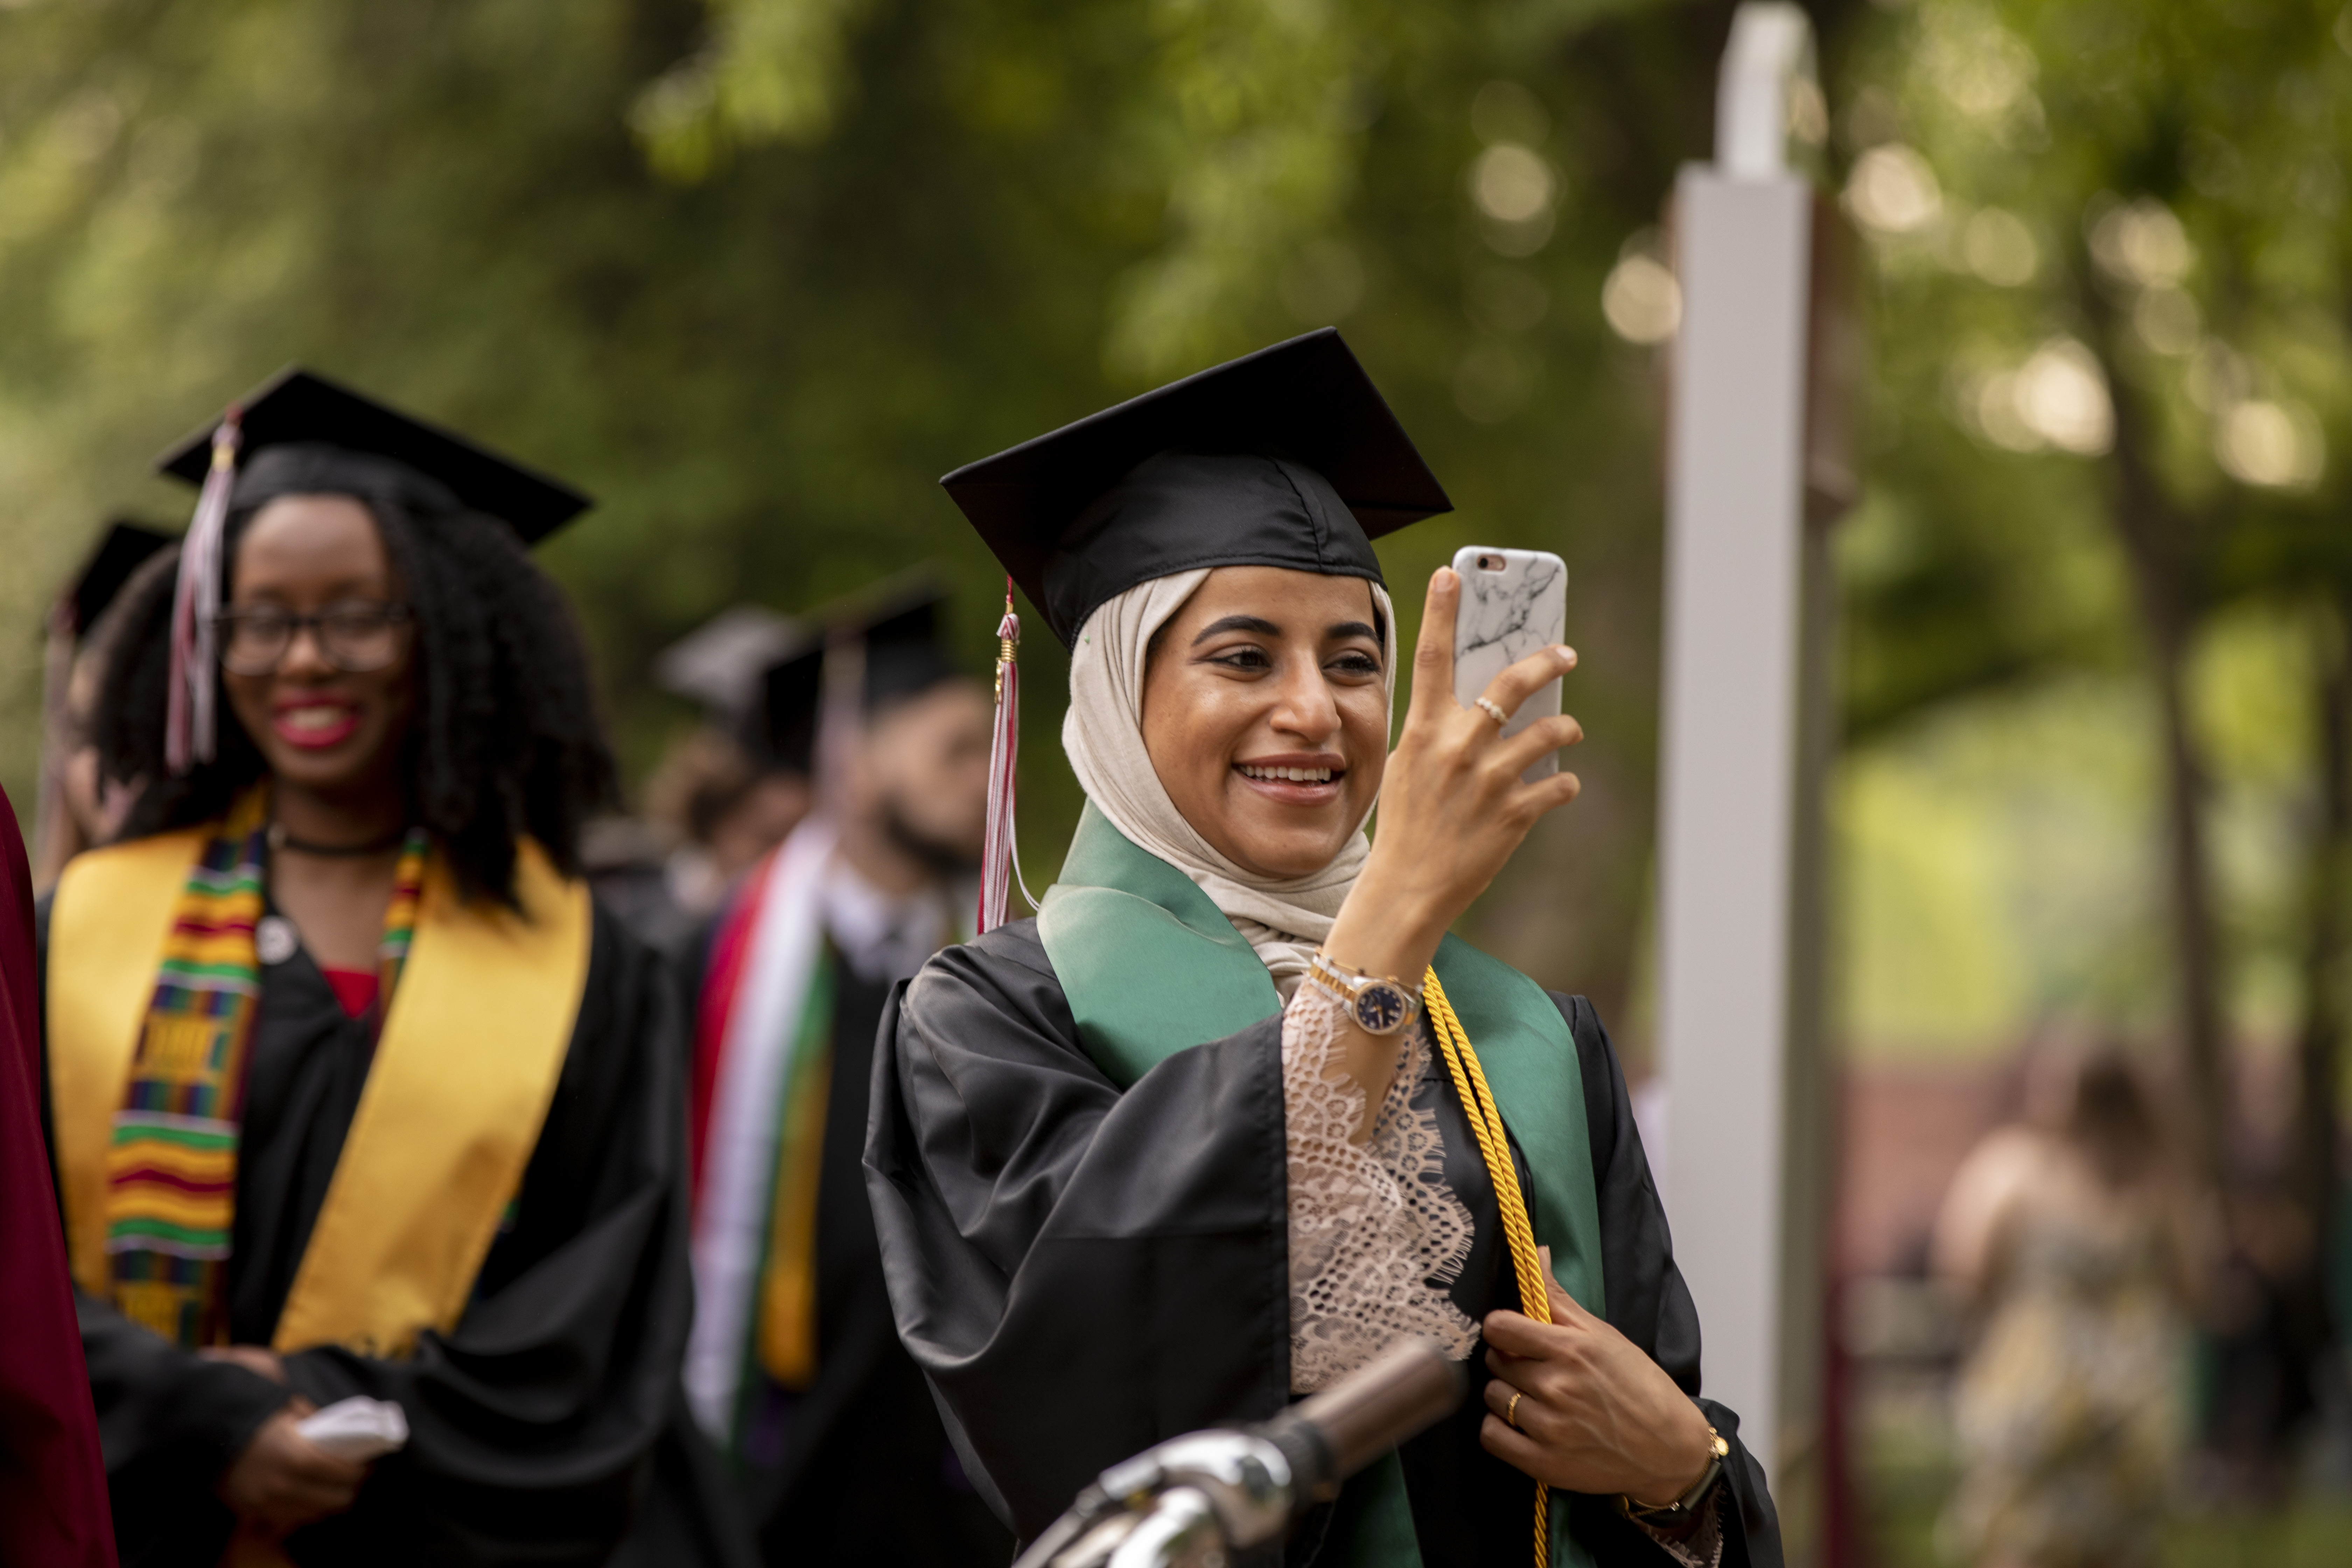 Student takes a selfie at Commencement.